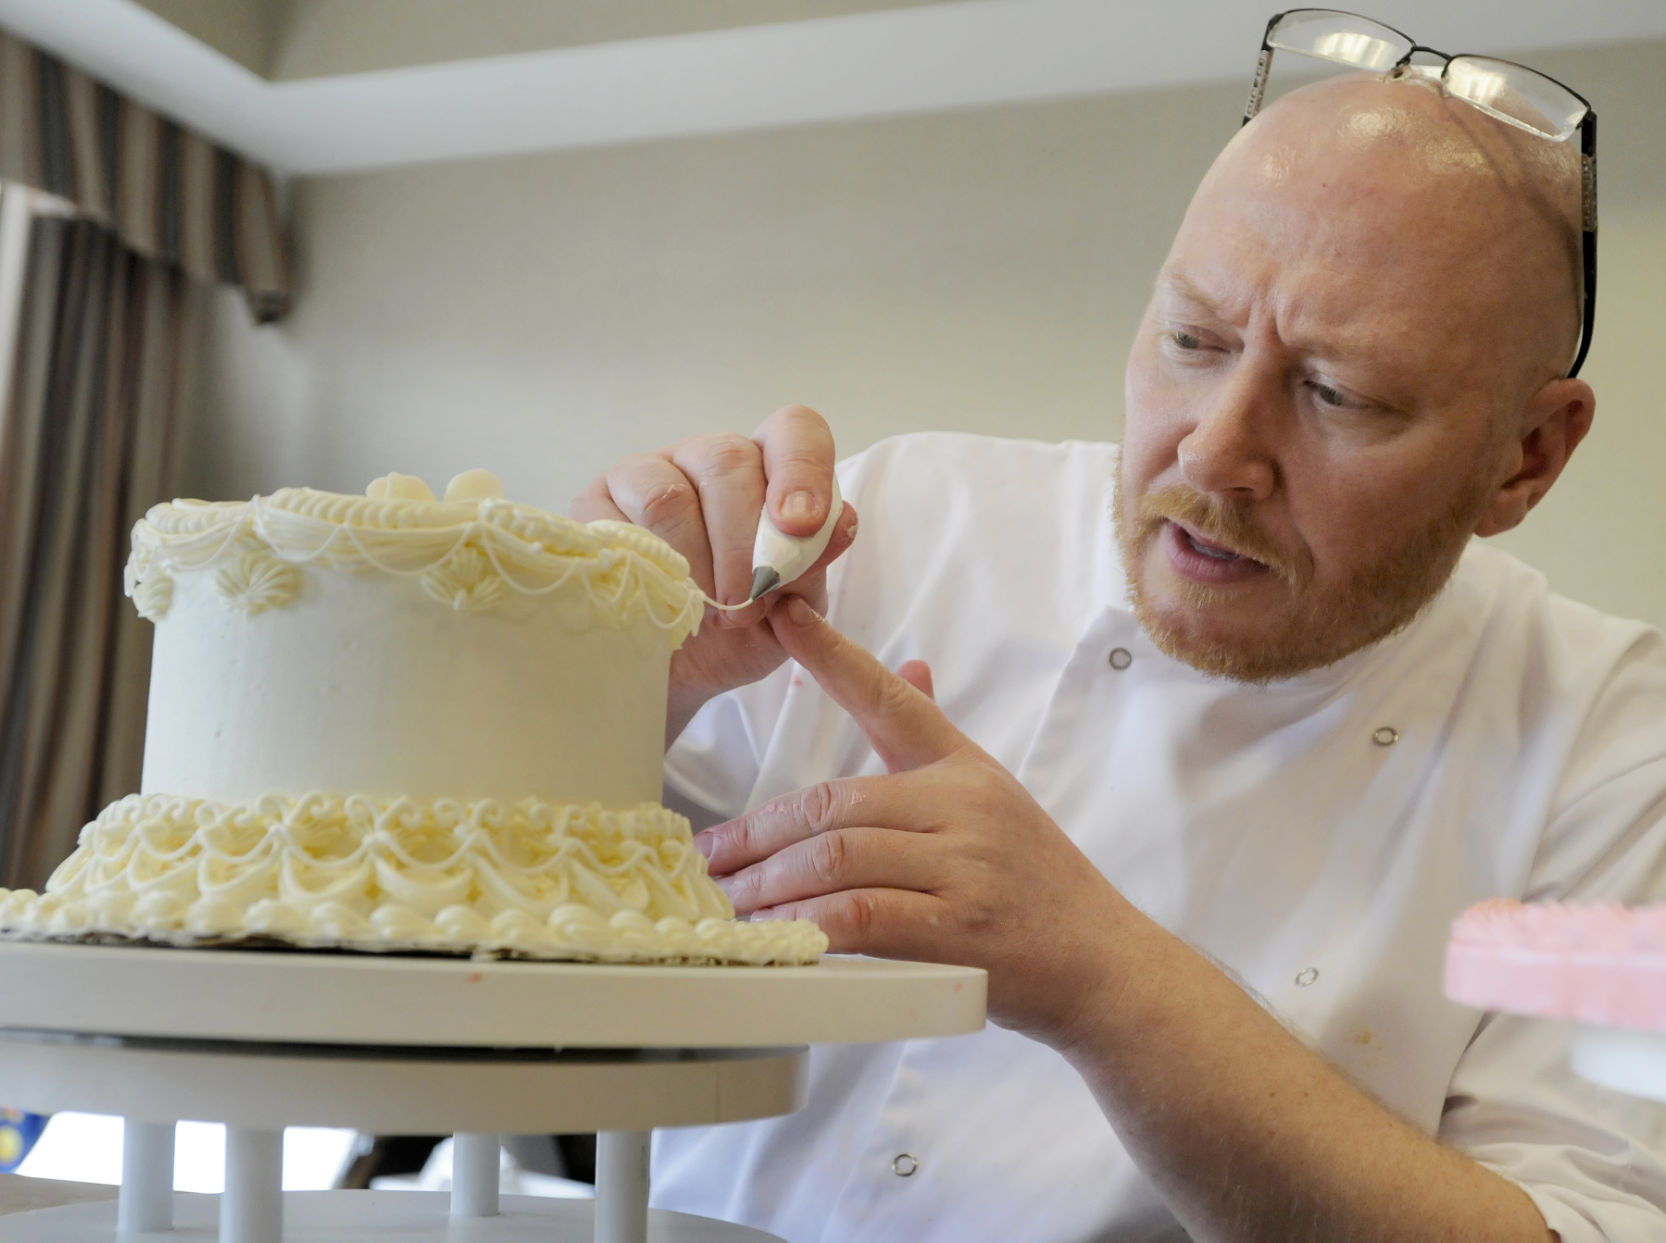 Royal wedding cake decorator offers classes on creating tasty art